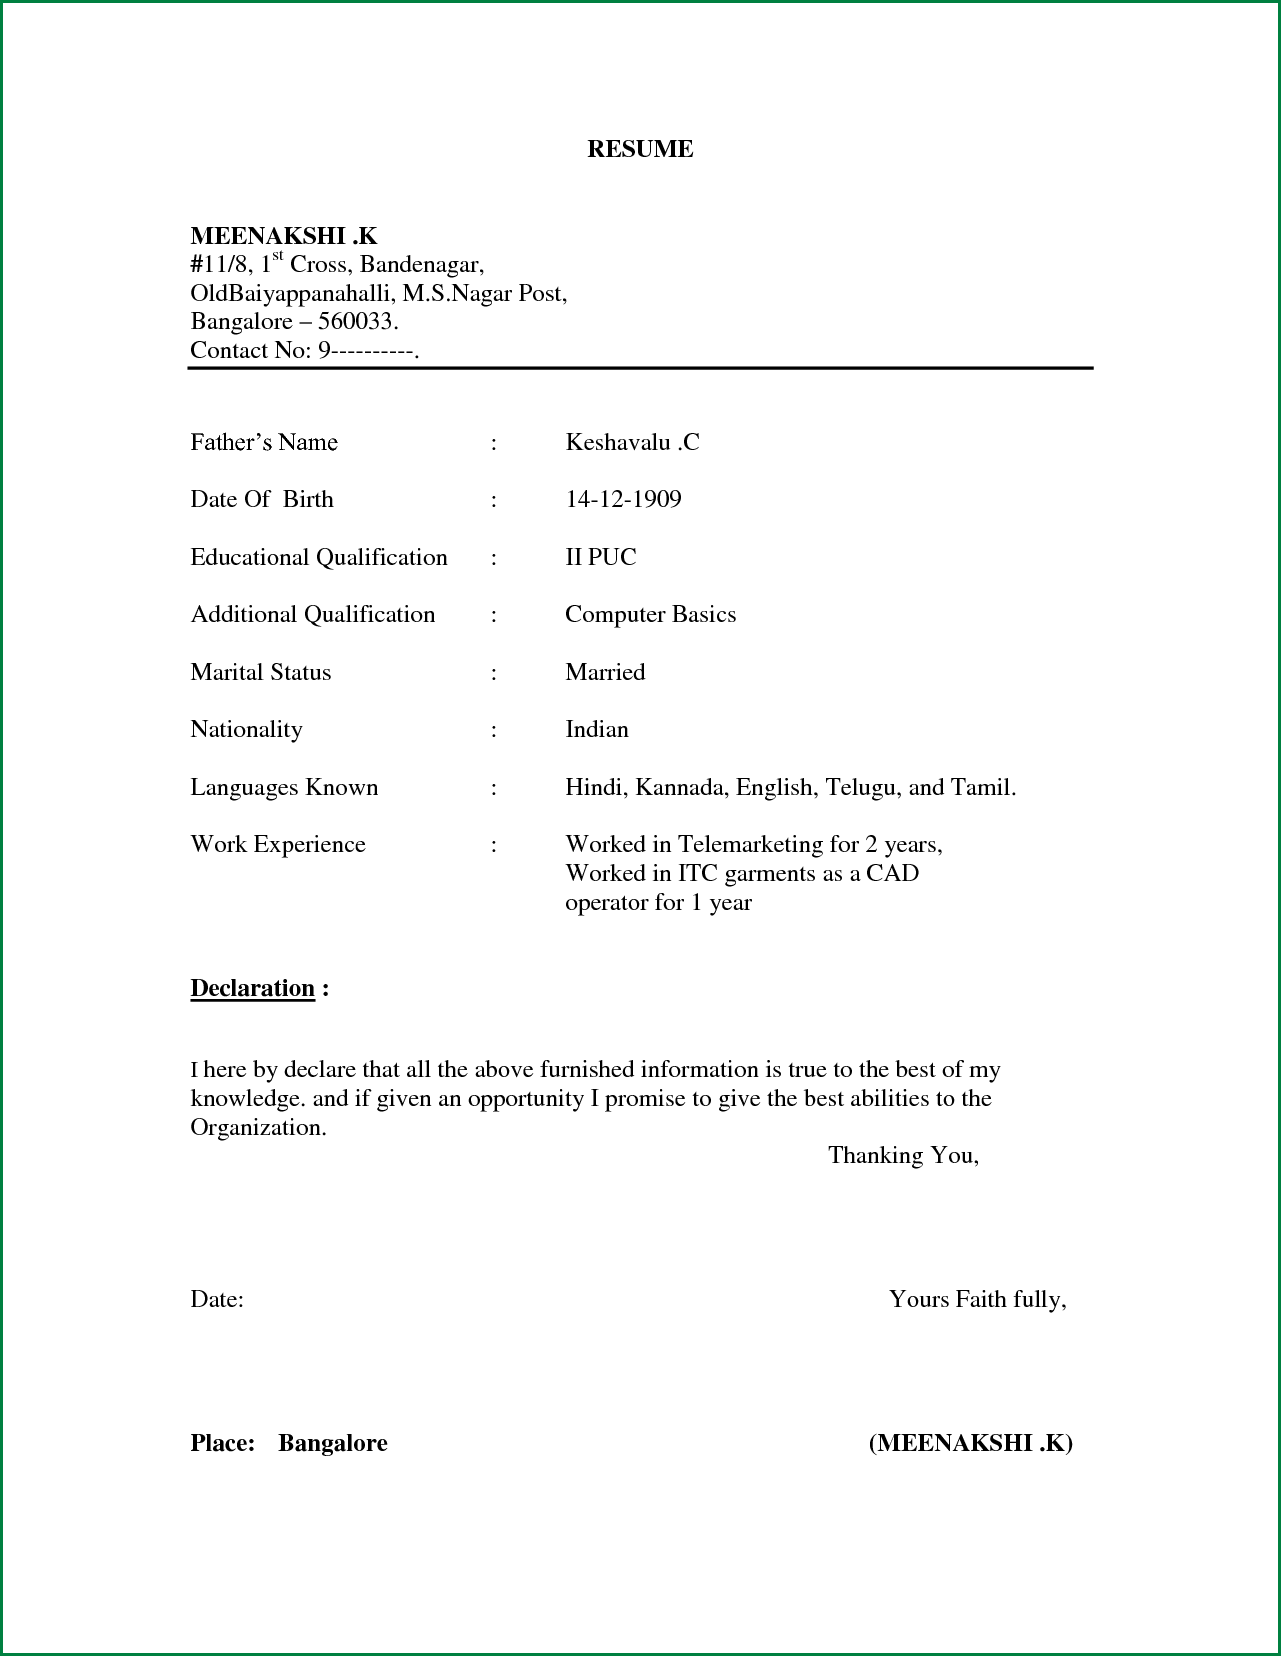 Resume Format On Word Simple Resume Format For Freshers In Word File.137085913 .